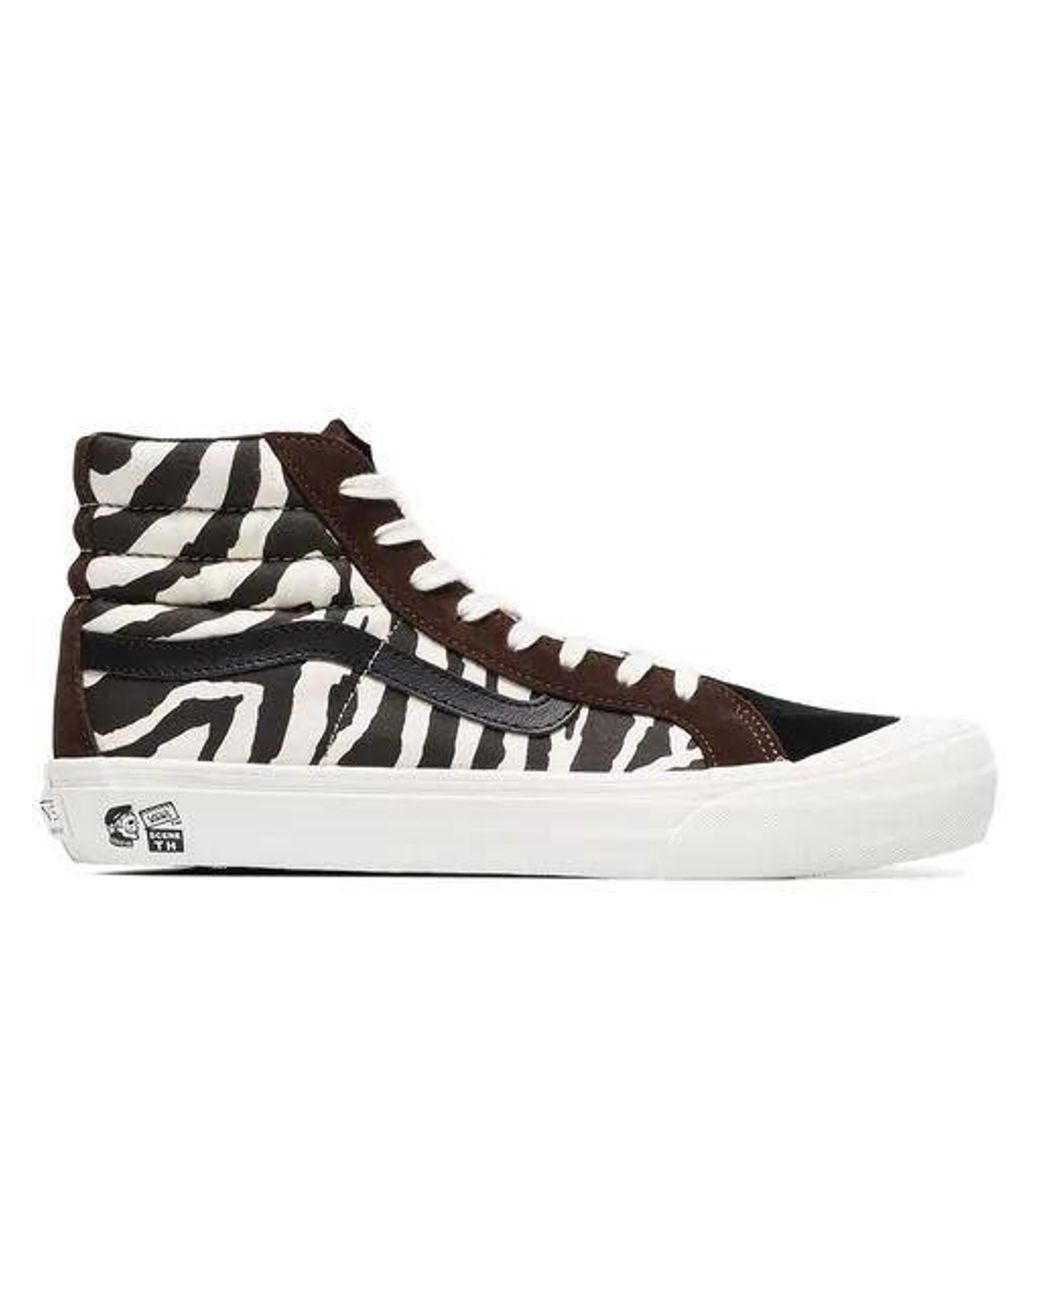 a0908f2a14 Vans Brown And White Vault X Taka Hayashi Zebra Print Sneakers in ...